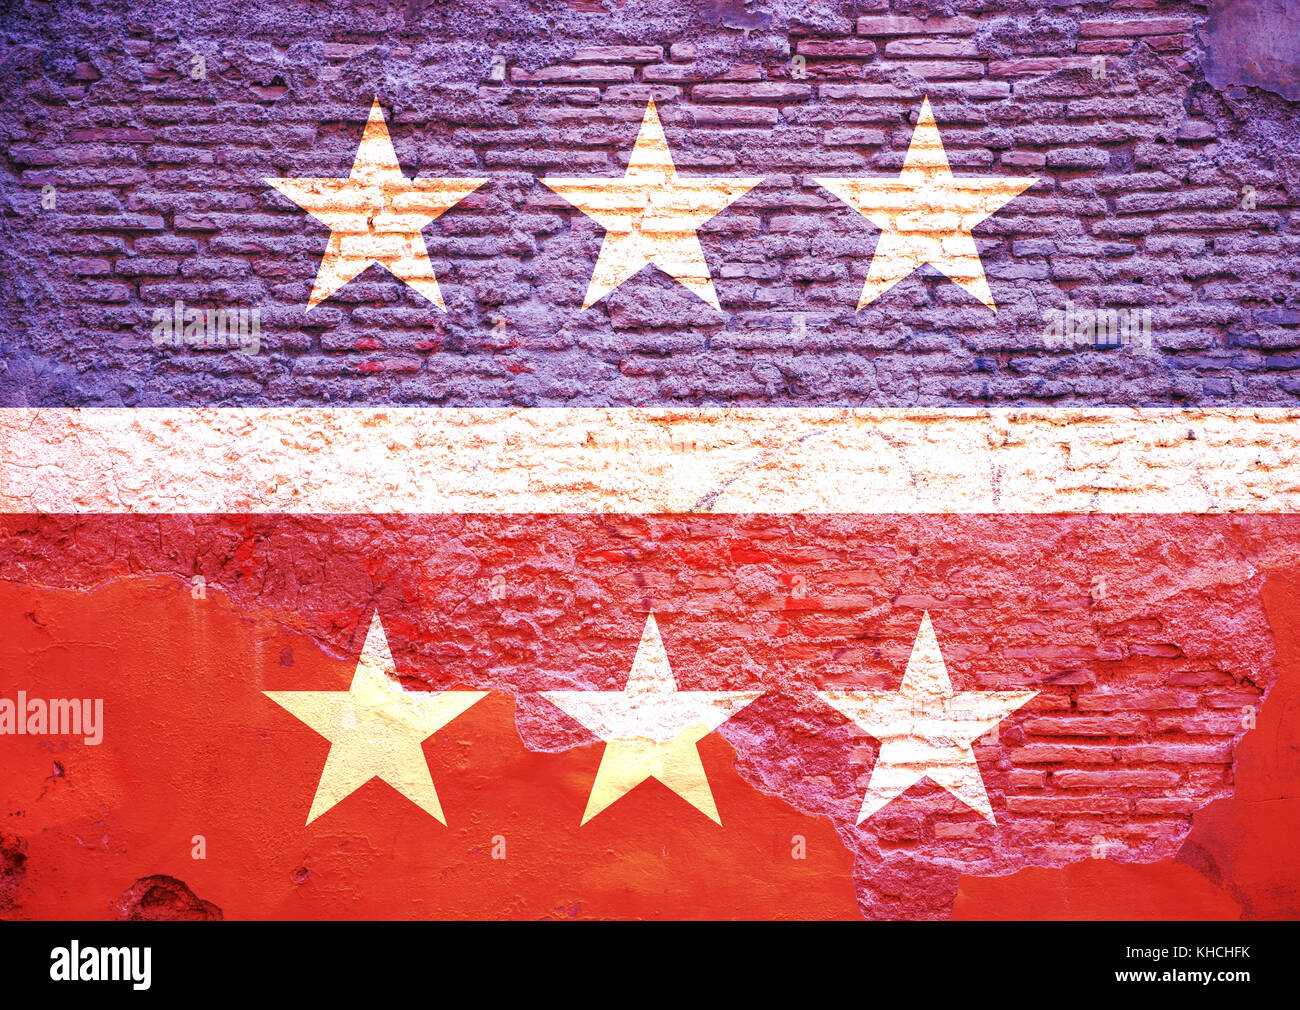 Democrats, republicans relationship. Their flag has been painted on a brick wall. 3d illustration - Stock Image